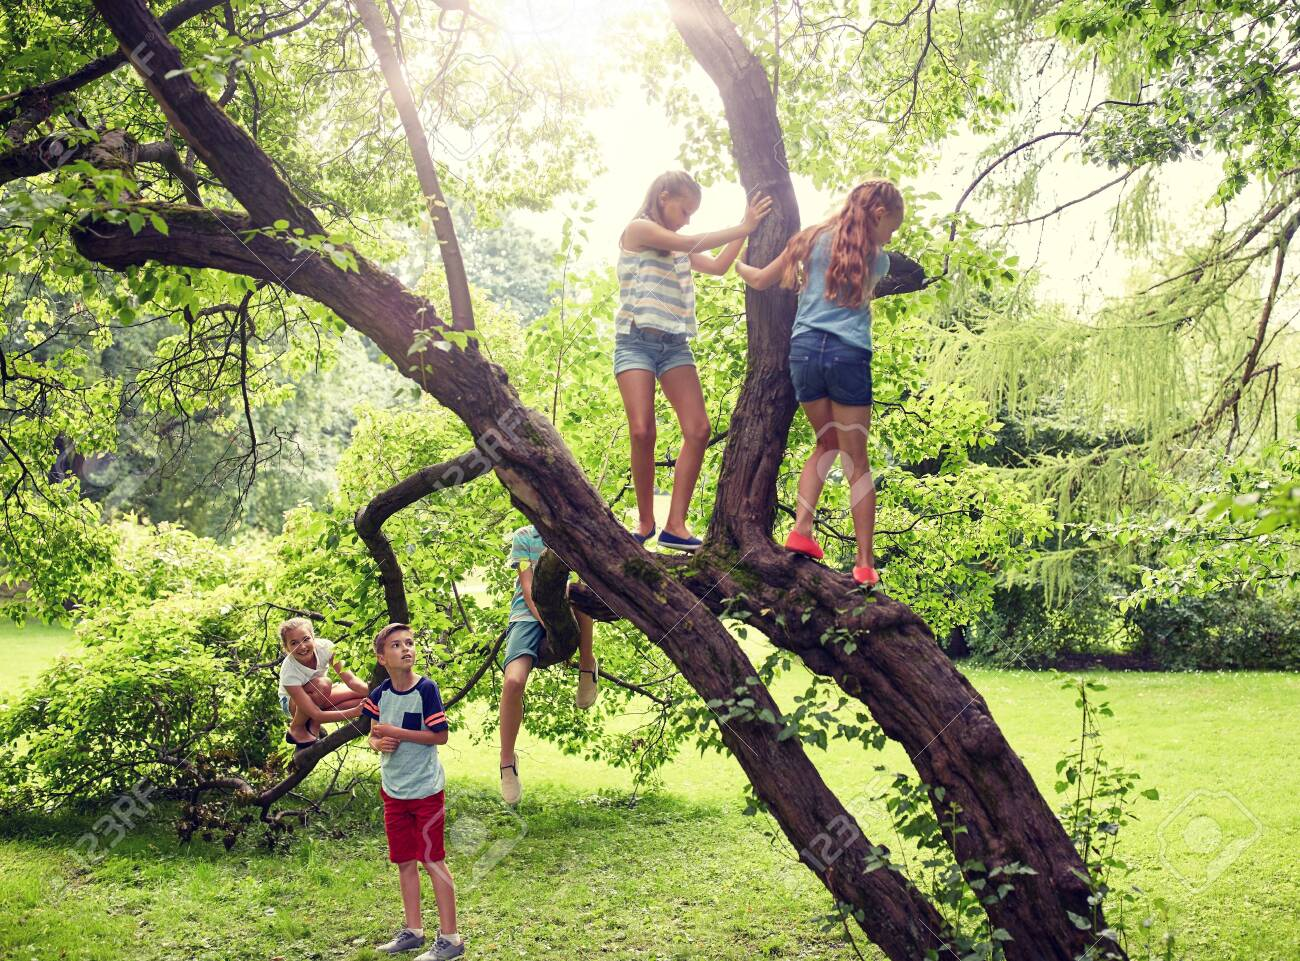 friendship, childhood, leisure and people concept - group of happy kids or friends climbing up tree and having fun in summer park - 139023567